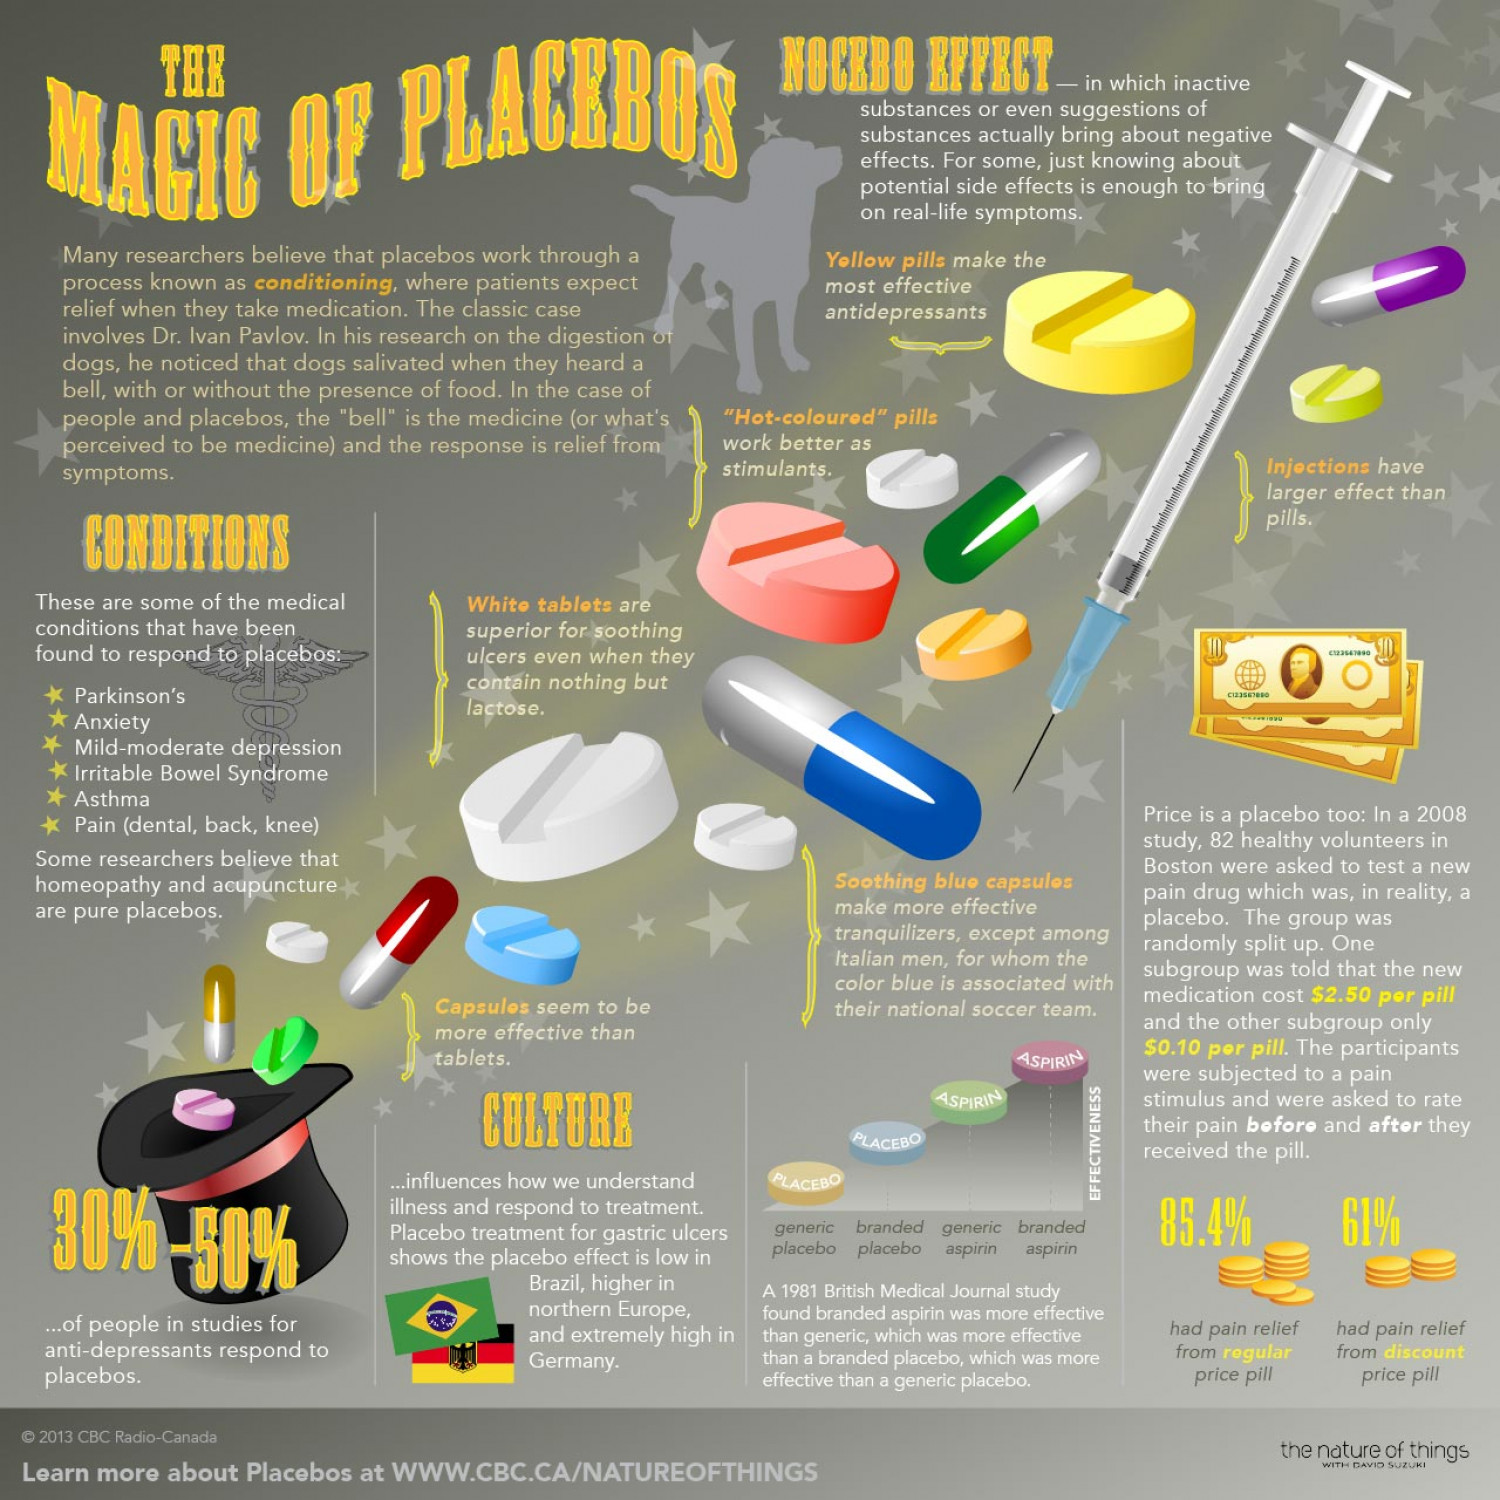 The Magic of Placesbos Infographic